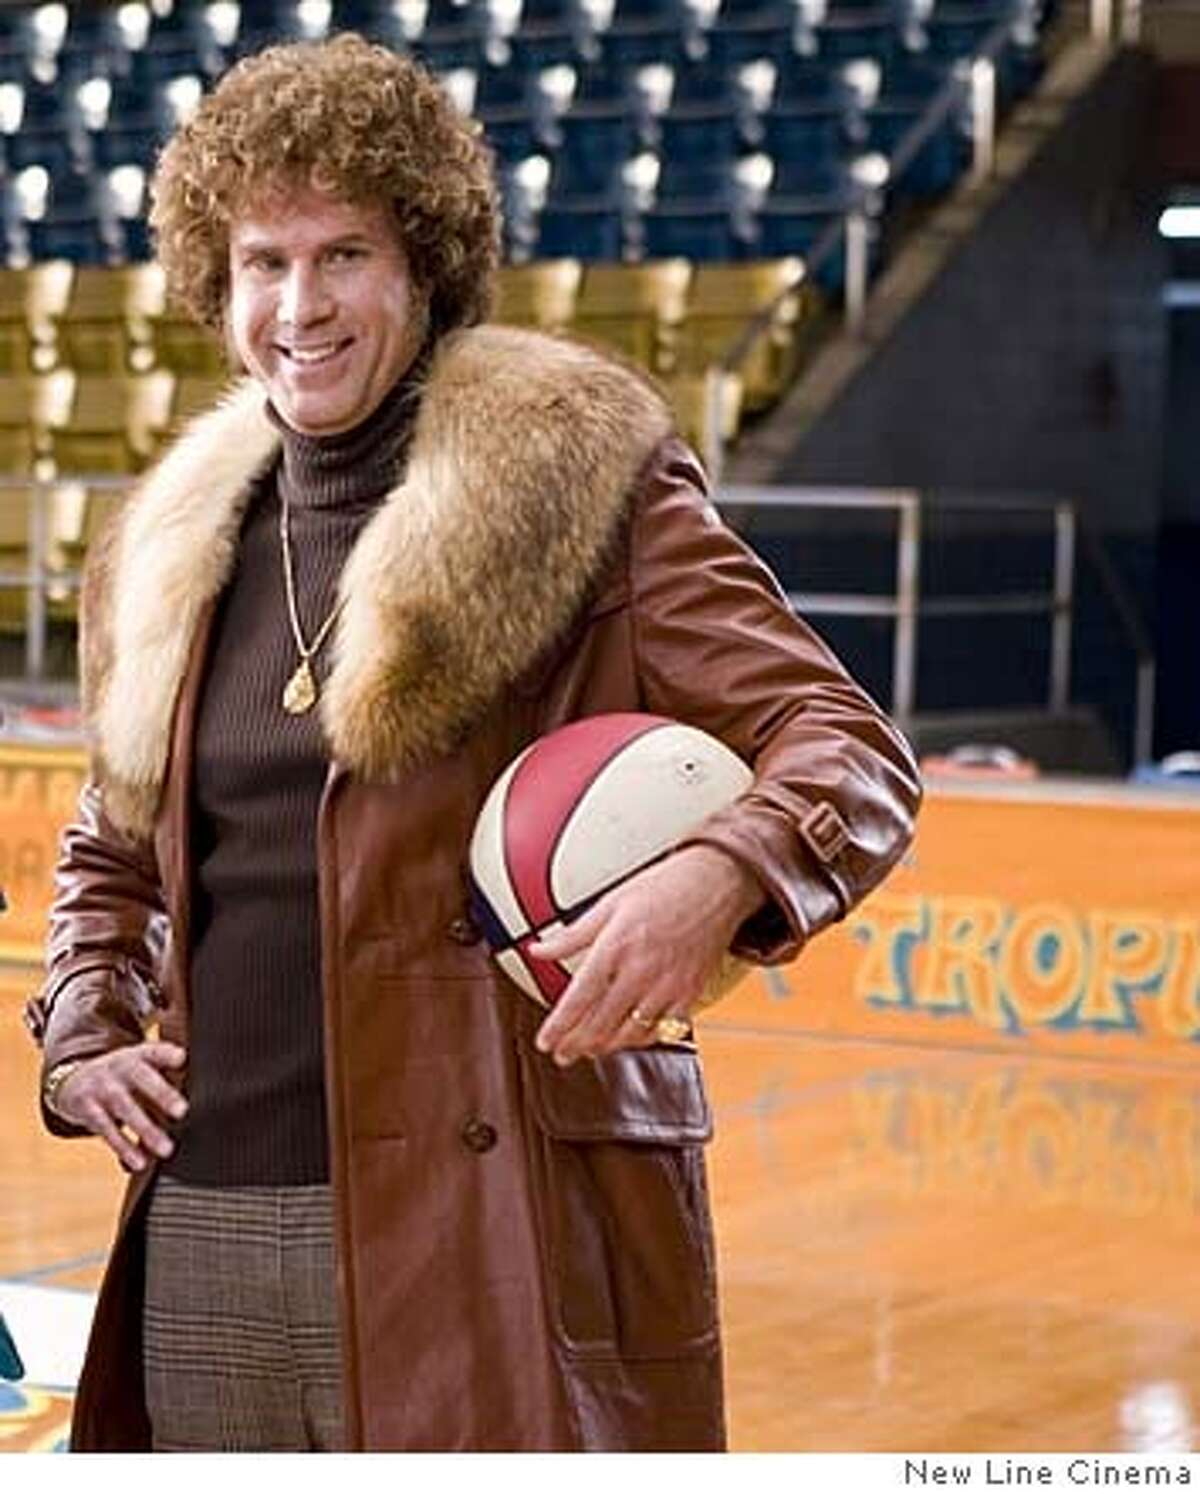 """Andrew Daly (left) as Dick Pepperfield and Will Ferrell as Jackie Moon in New Line Cinema's """"Semi-Pro"""" 2008 Semi-Pro , February 16, 2007 Photo by Frank Masi/newline.wireimage.com To license this image (13192841), contact NewLine: U.S. 1-212-686-8900 / U.K. 44-207-868-8940 / Australia 61-2-8262-9222 / Japan: 81-3-5464-7020 1 212-686-8901 (fax) info@wireimage.com (e-mail) NewLine.wireimage.com (web site)"""